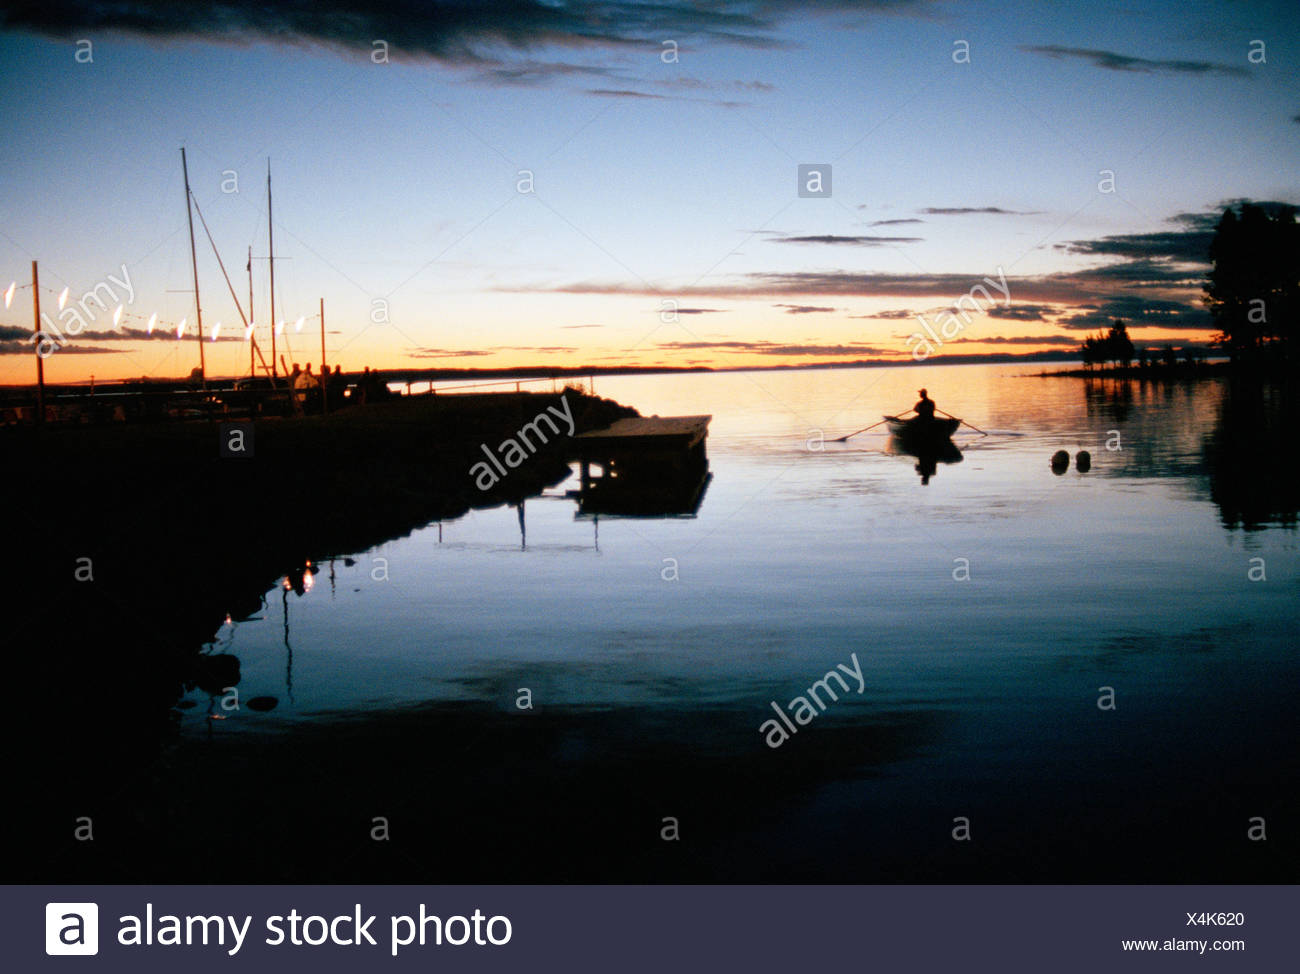 A boat in the evening, Sweden. - Stock Image